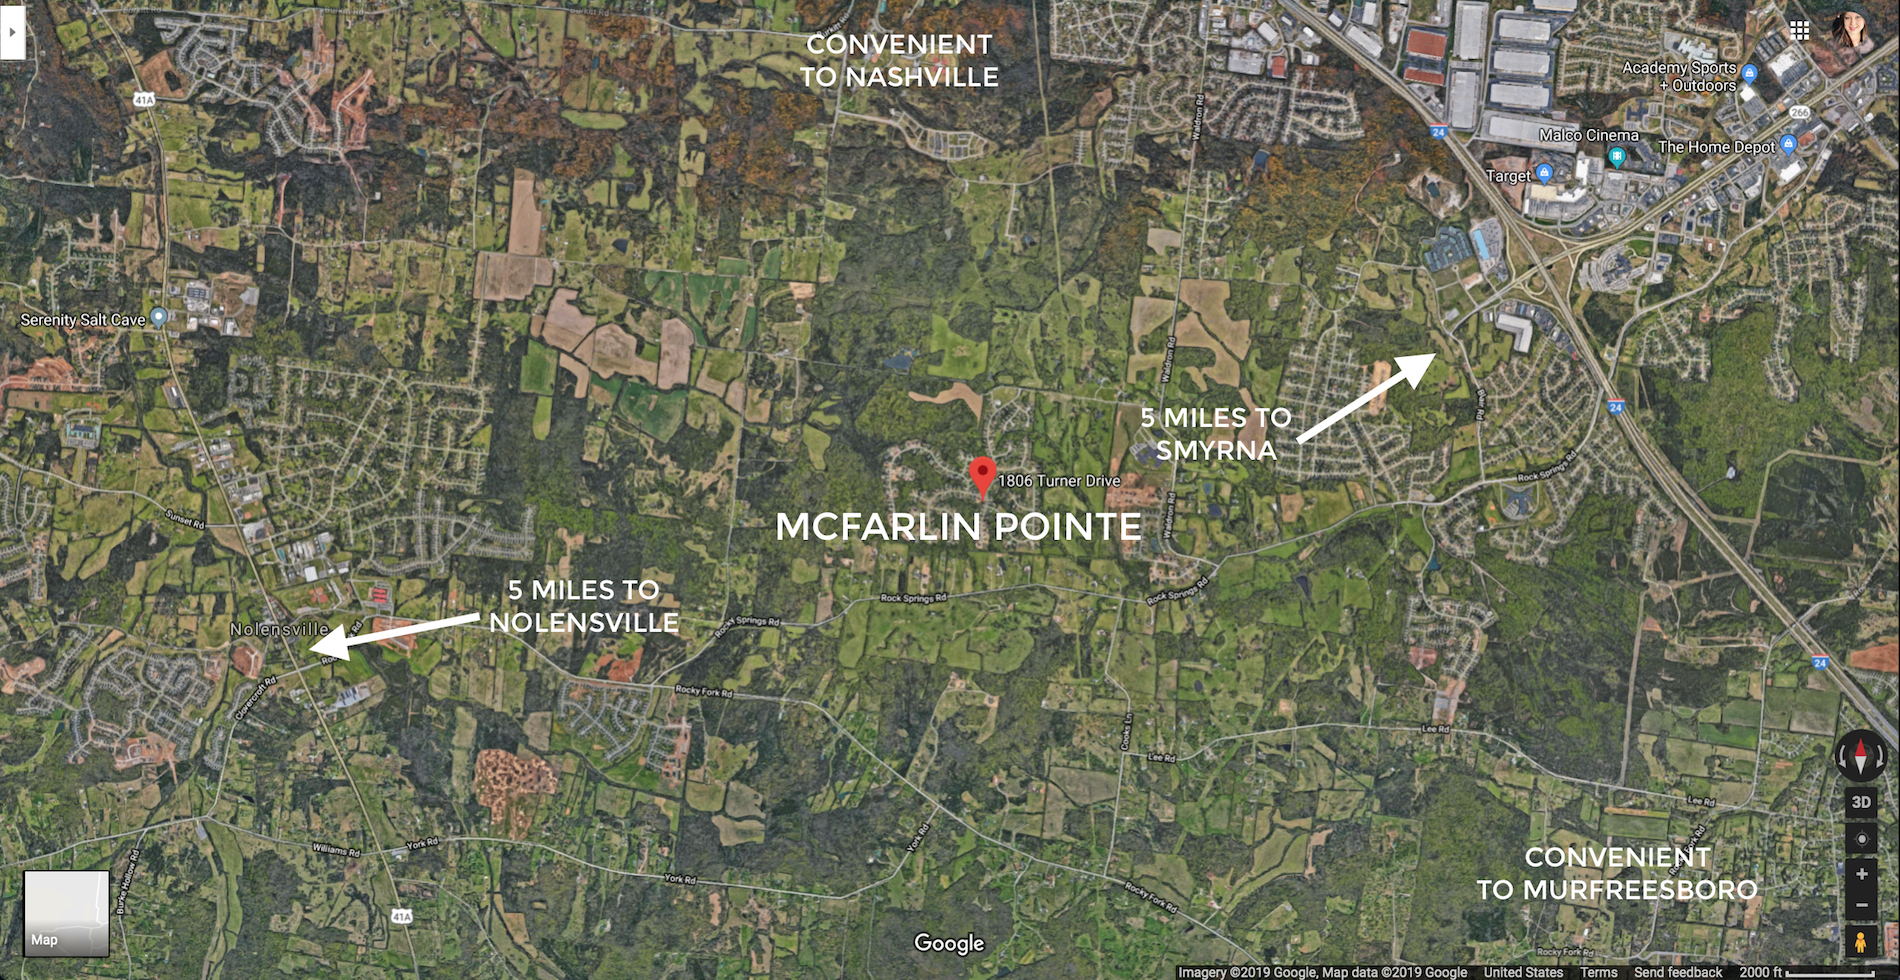 McFarlin Pointe subdivision between Nolensville, Smyrna and LaVergne, convenient commute to Nashville and Murfreesboro